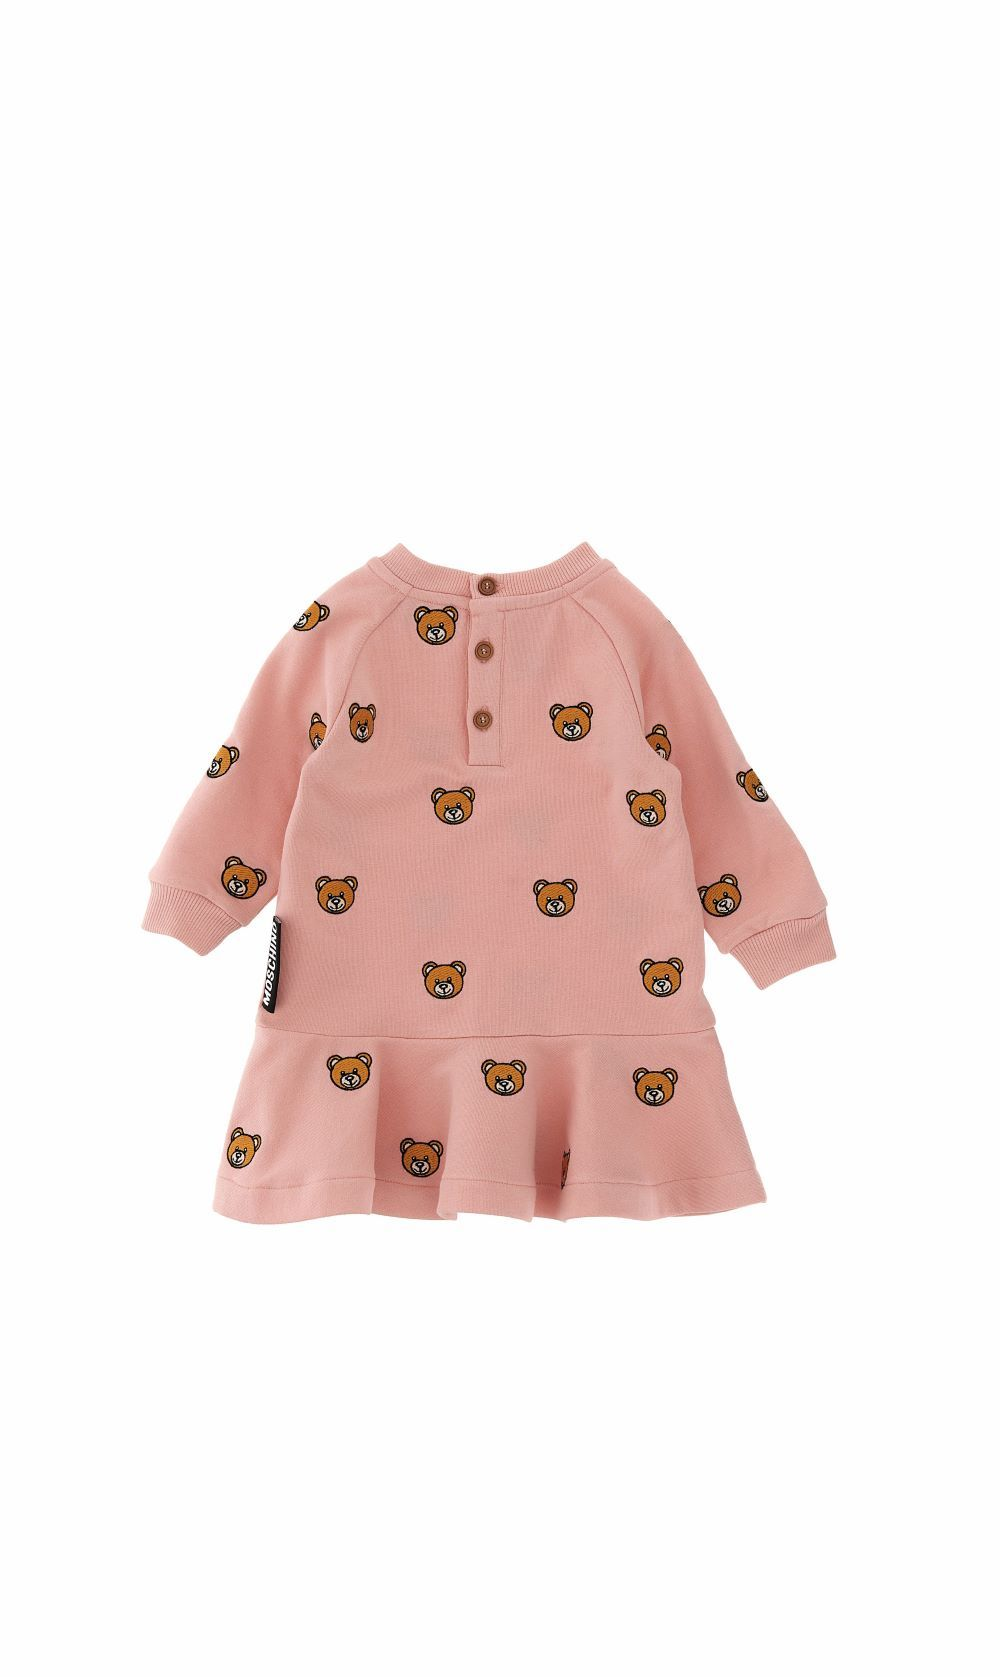 MBV07M / 83245 ROSE TOY / MOSCHINO DRESS W G B W/ALLOVER BEAR EMBROIDERY